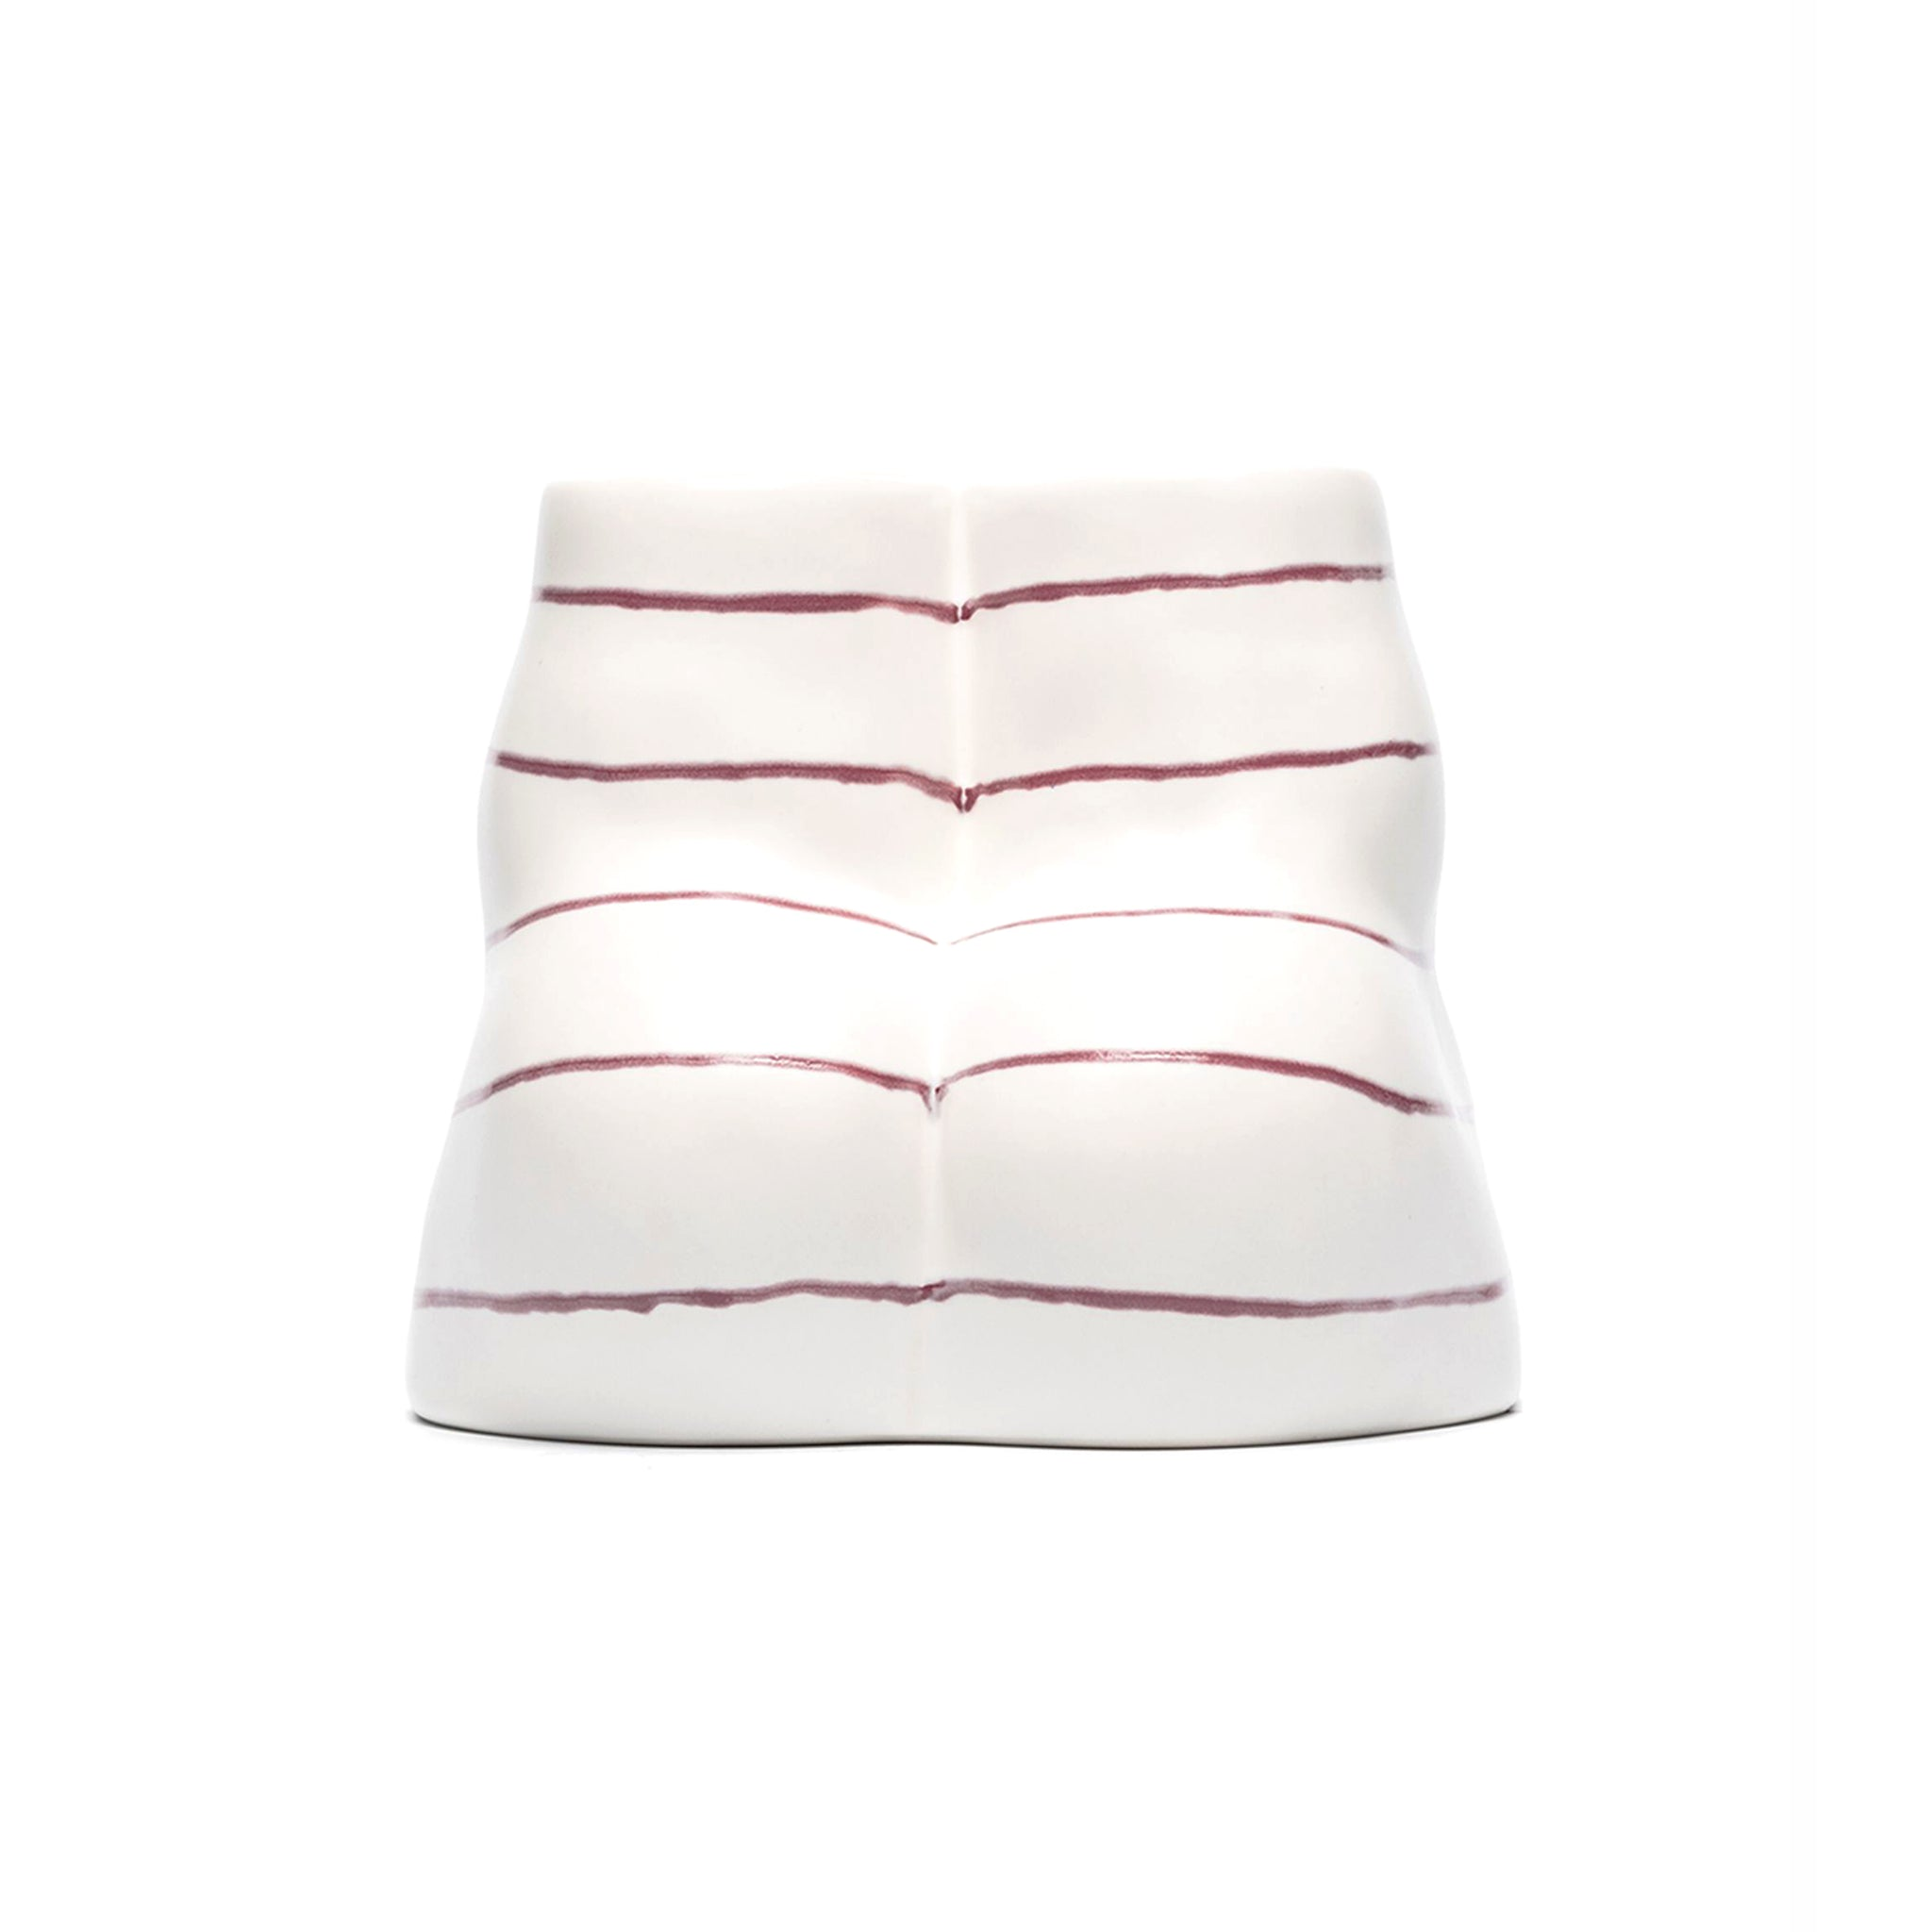 Double L'Egg Tea-light Holder White/Maroon Striped